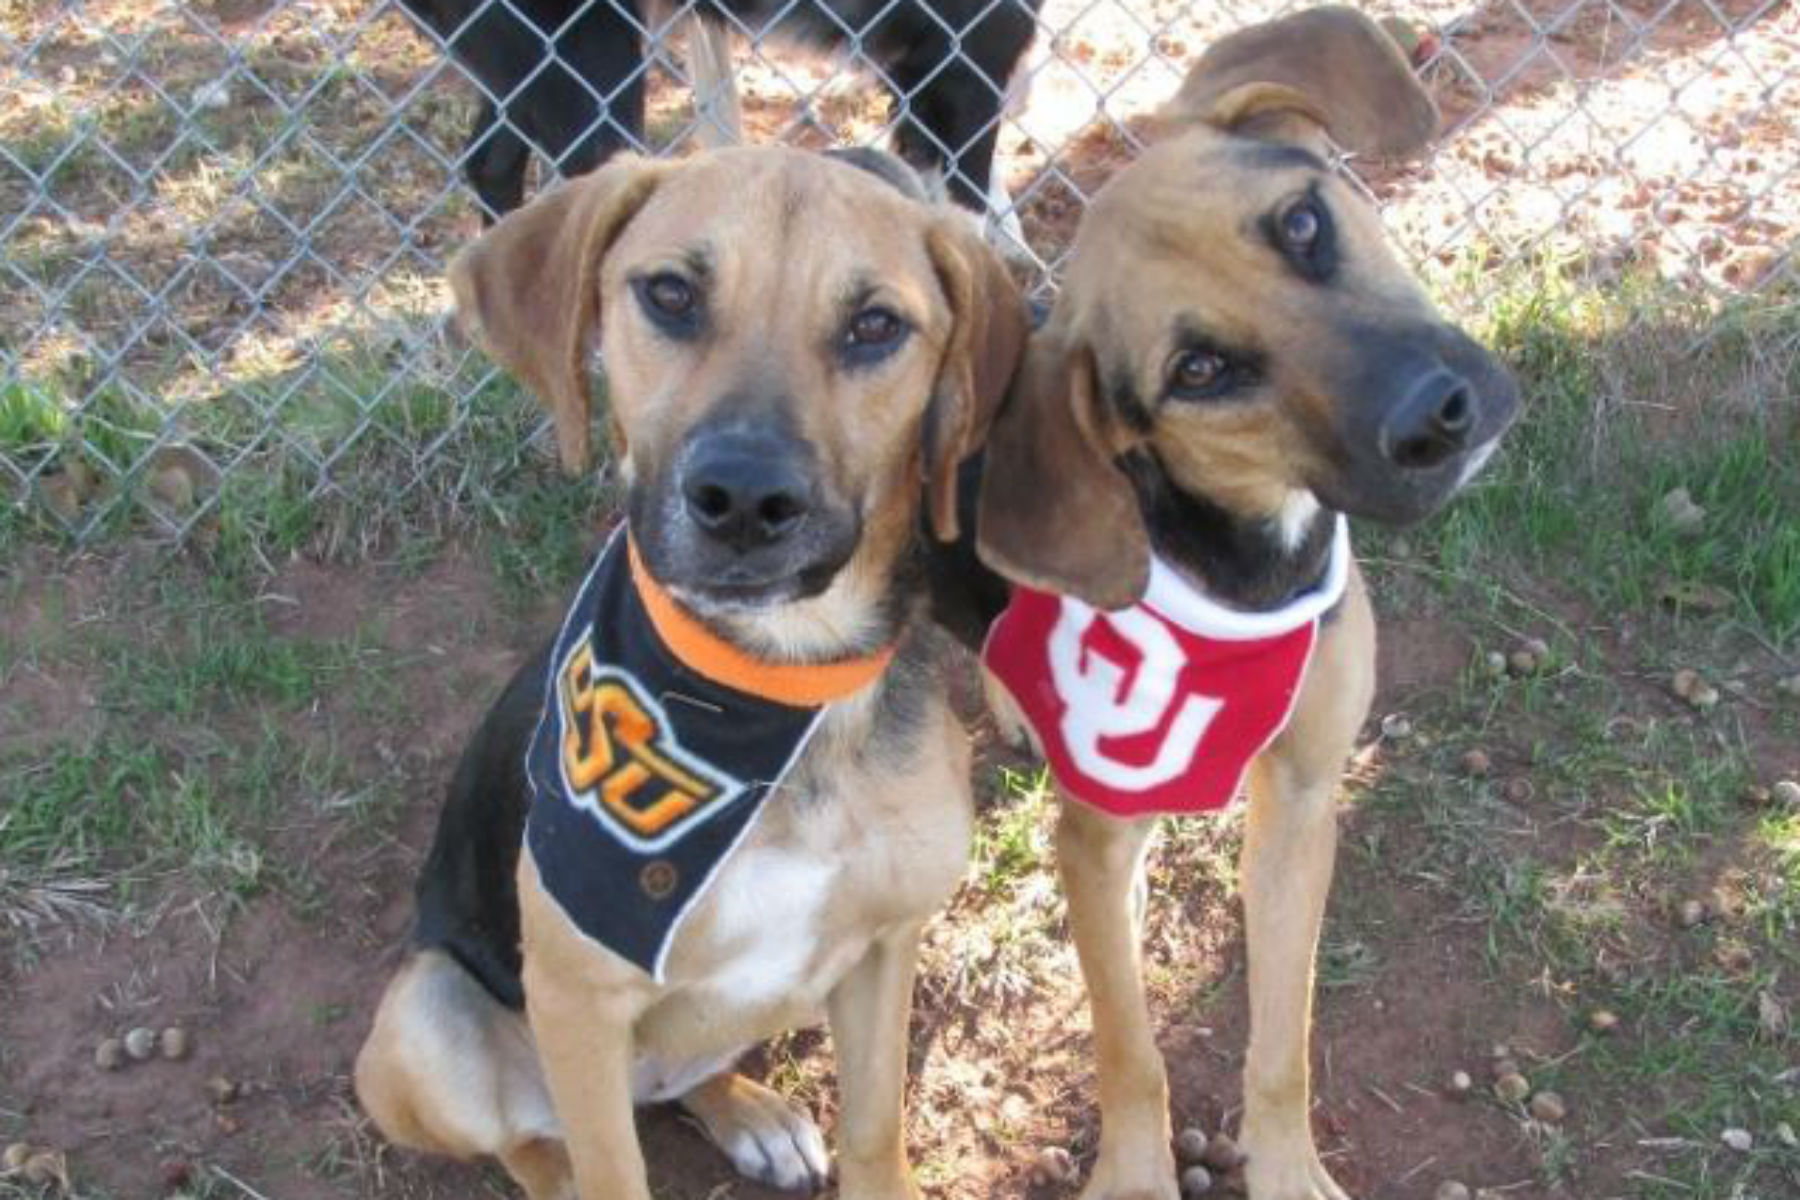 Two dogs at OKC Animal Welfare